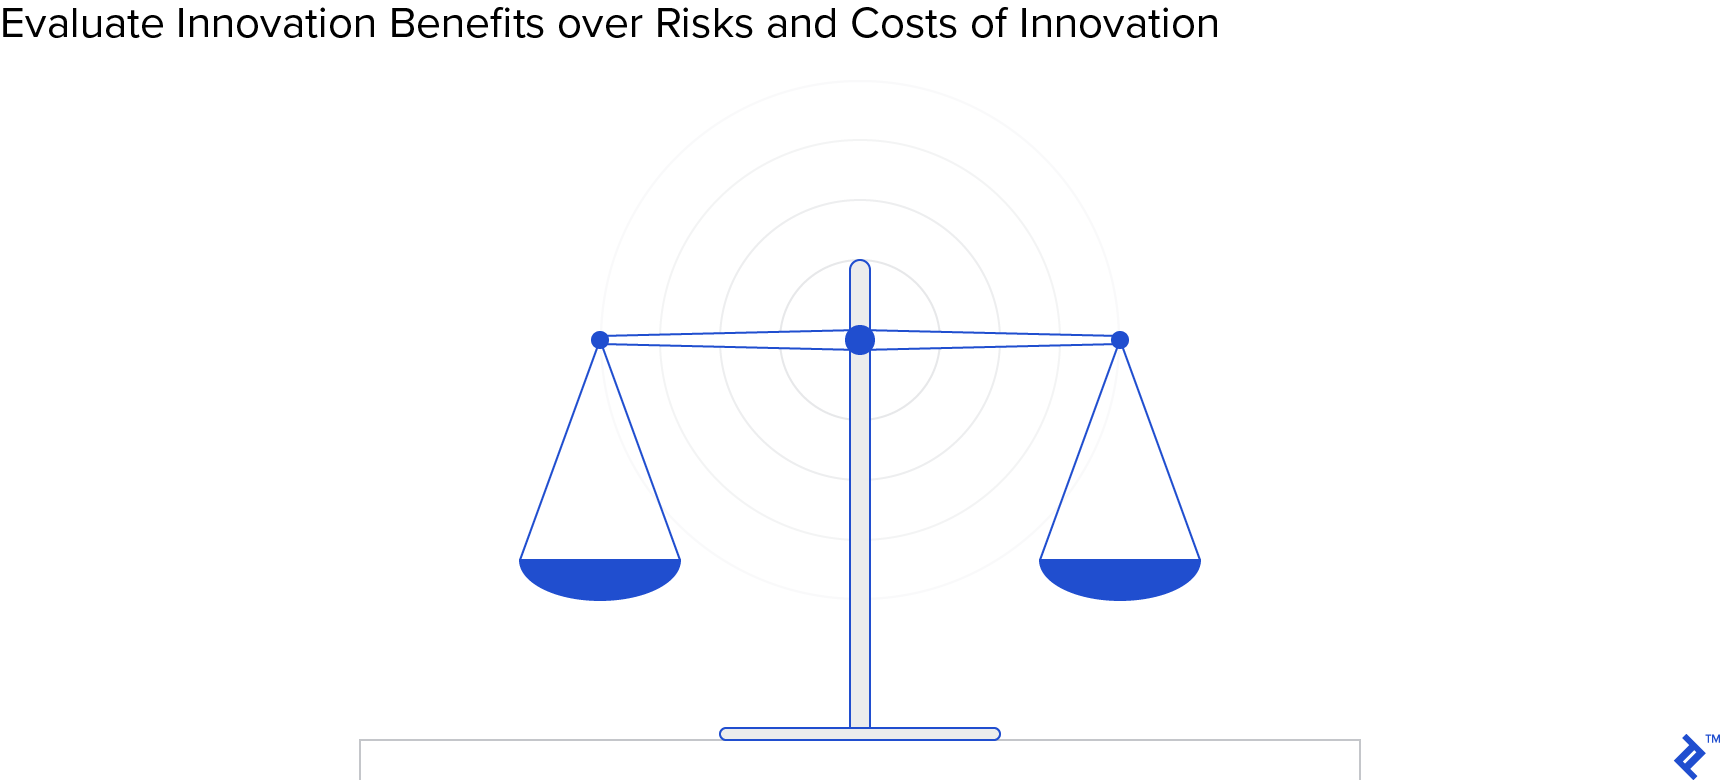 Evaluate innovation benefits over risks and costs of innovation